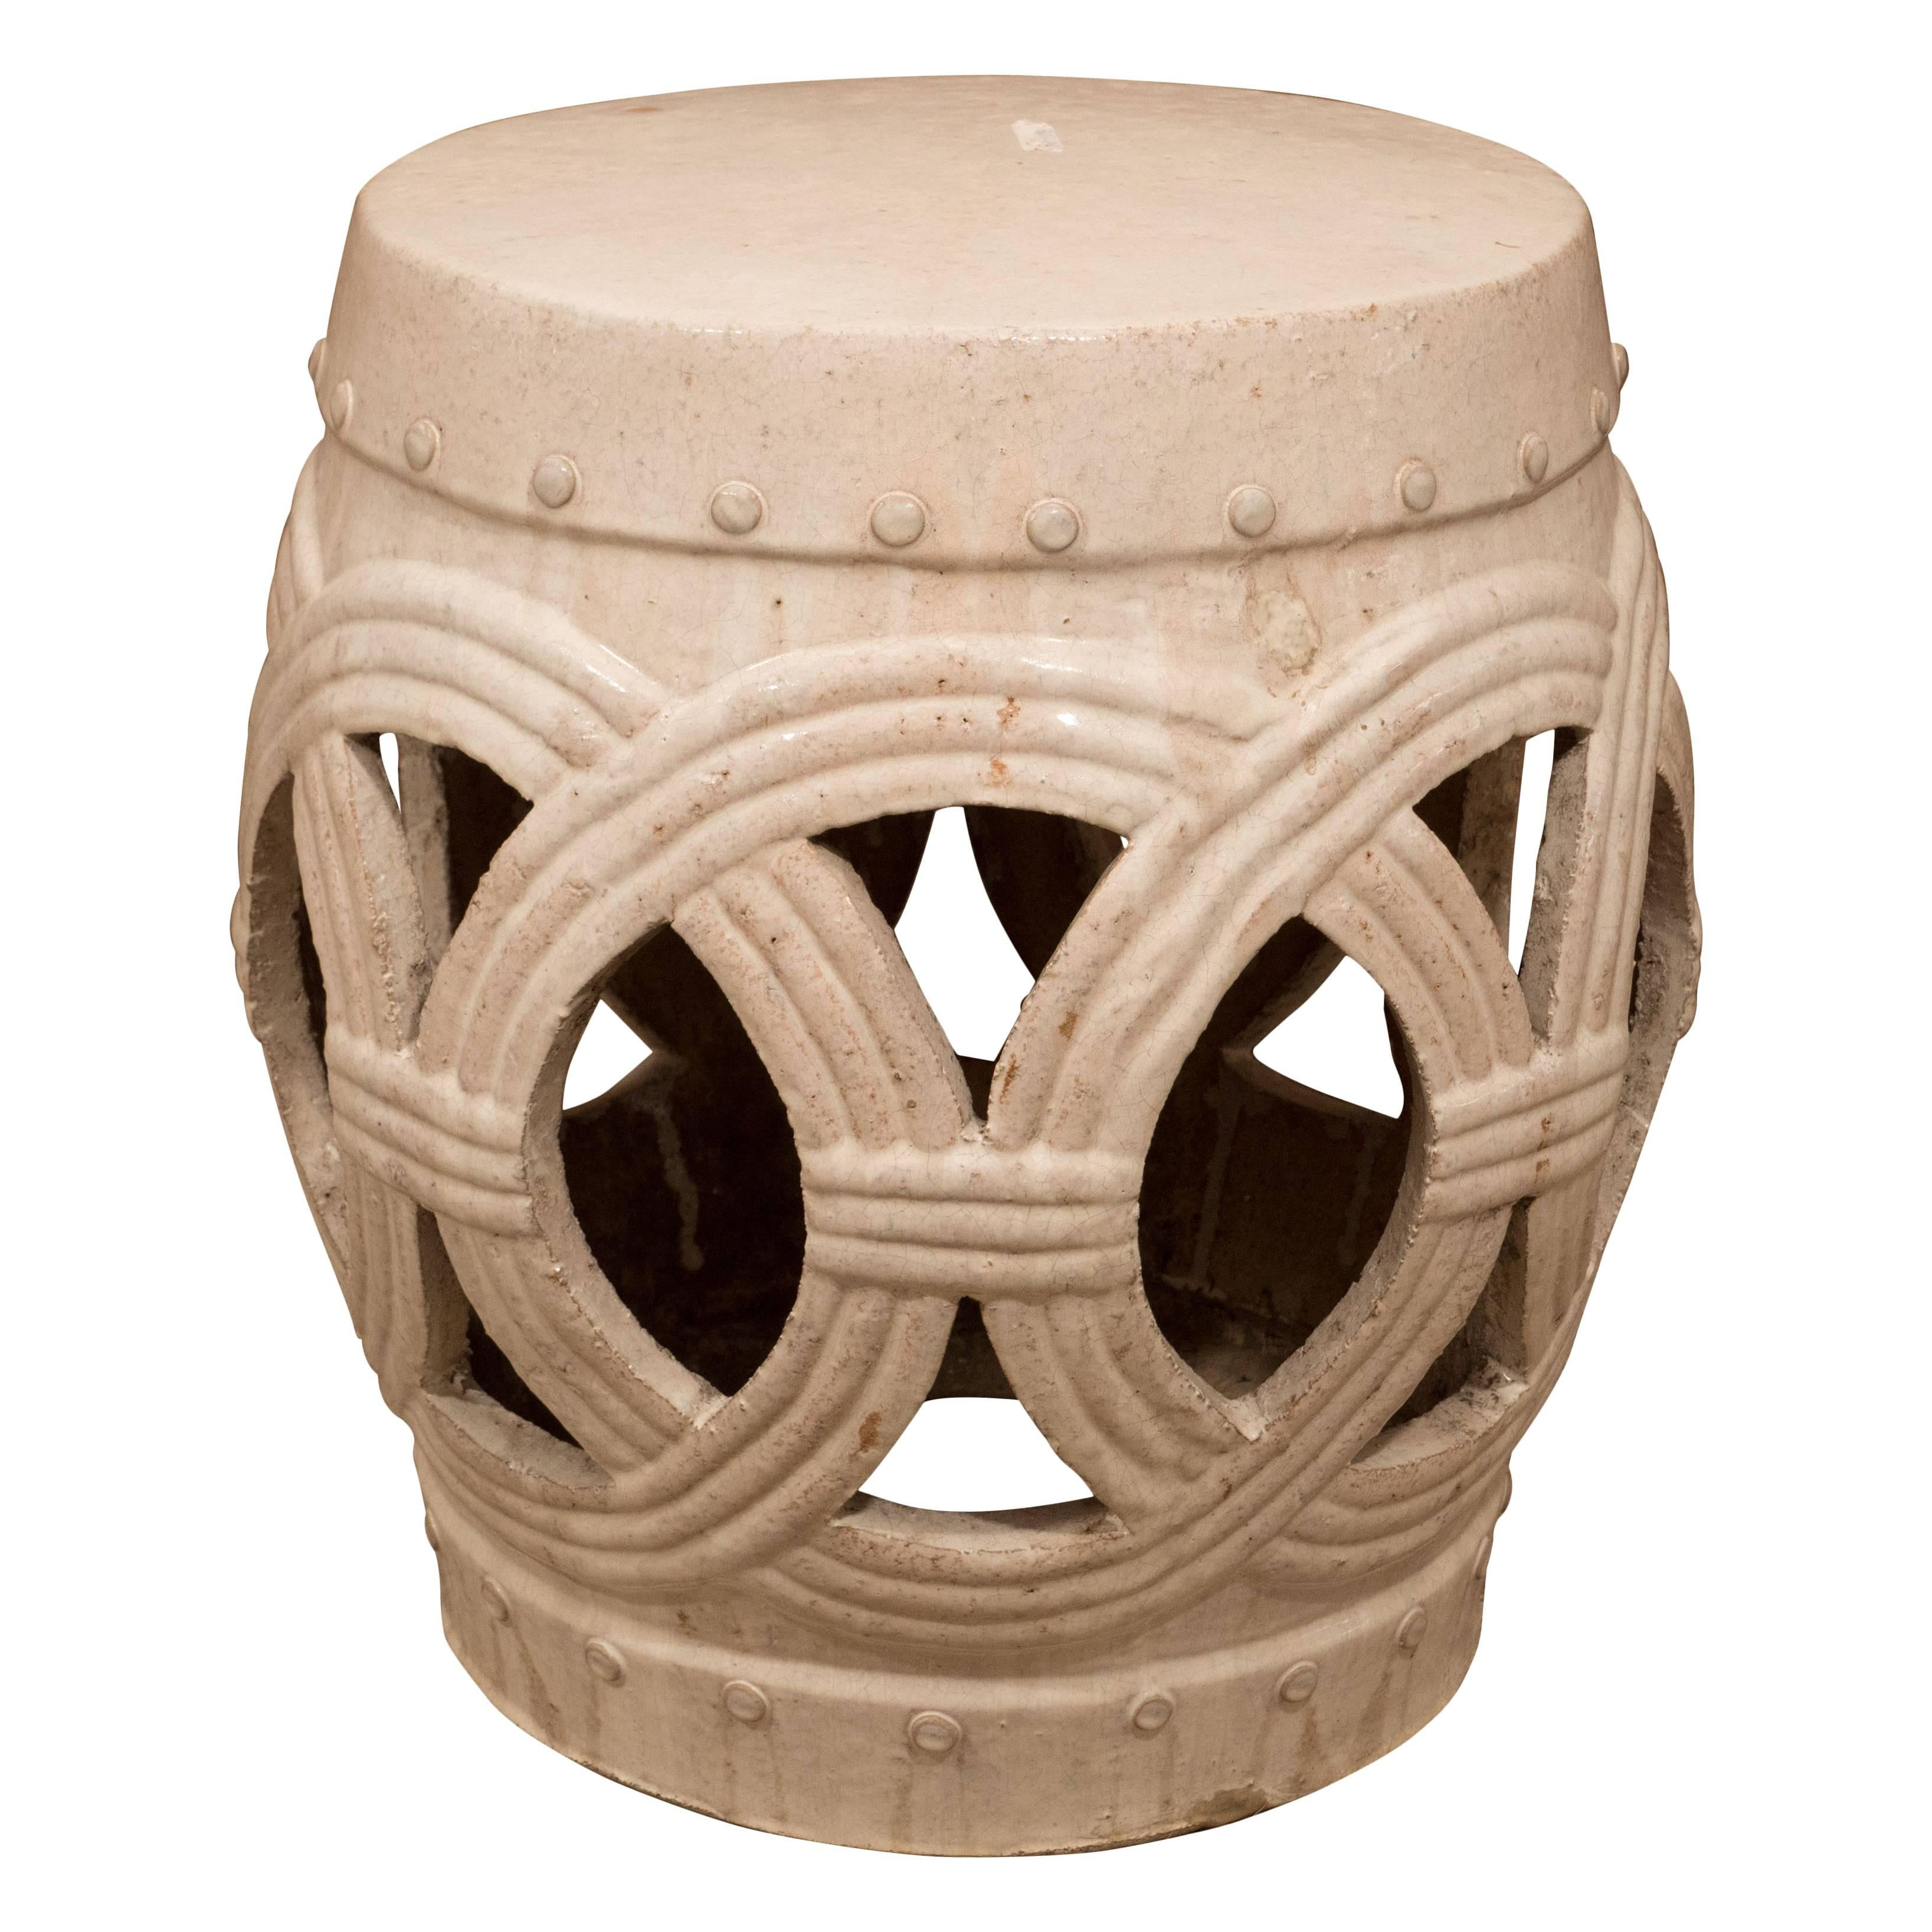 A Chinese Ceramic Garden Stool